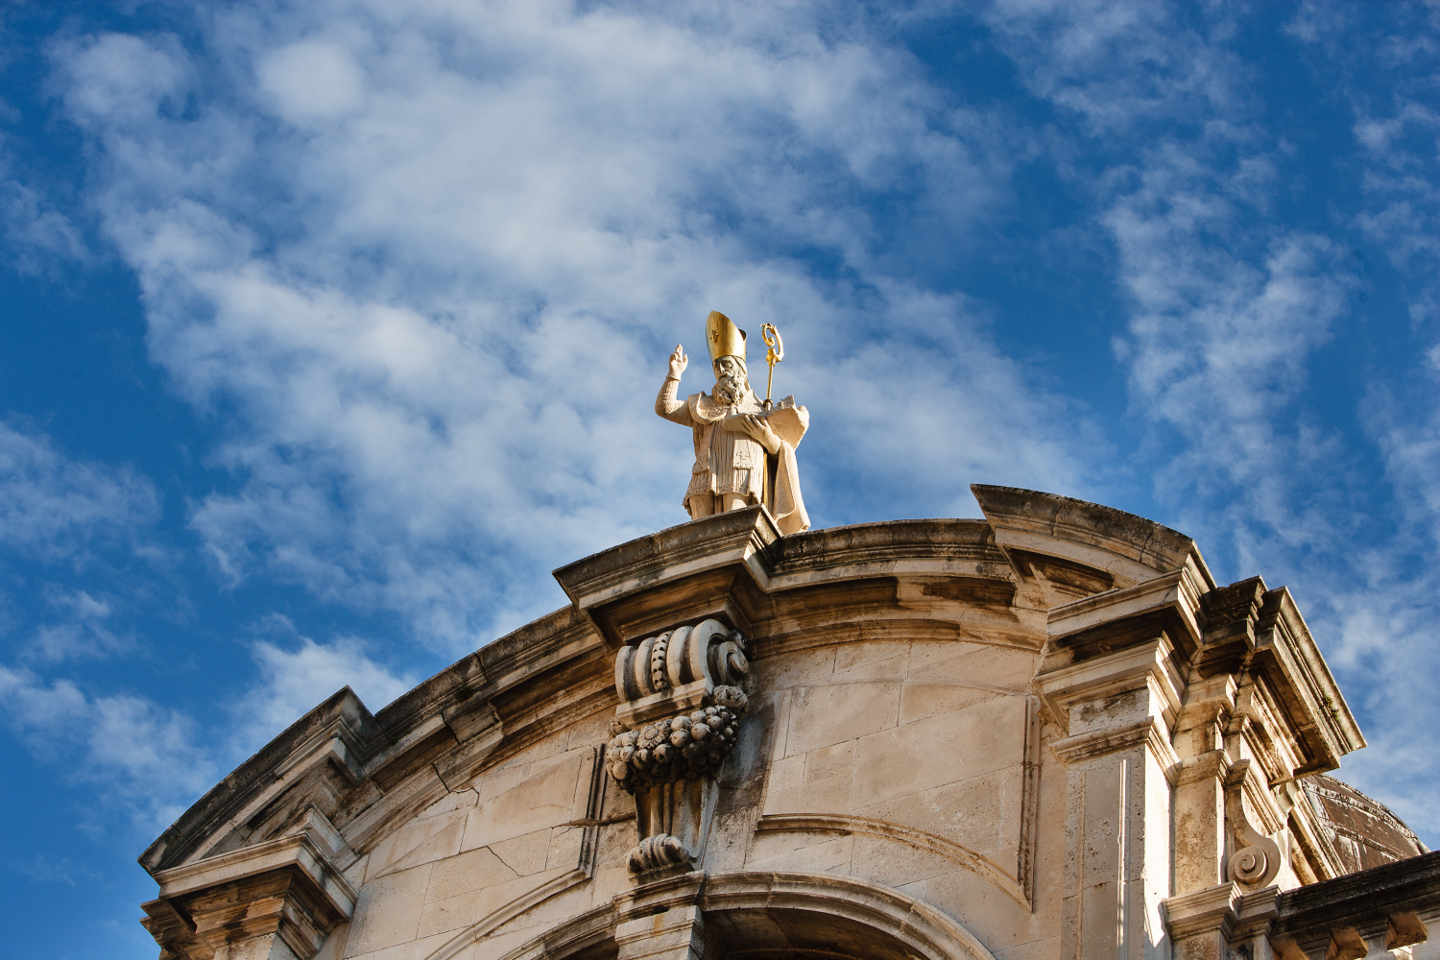 Discover dubrovnik old town guided walking tour - Discover Dubrovnik Old Town Guided Walking Tour 55